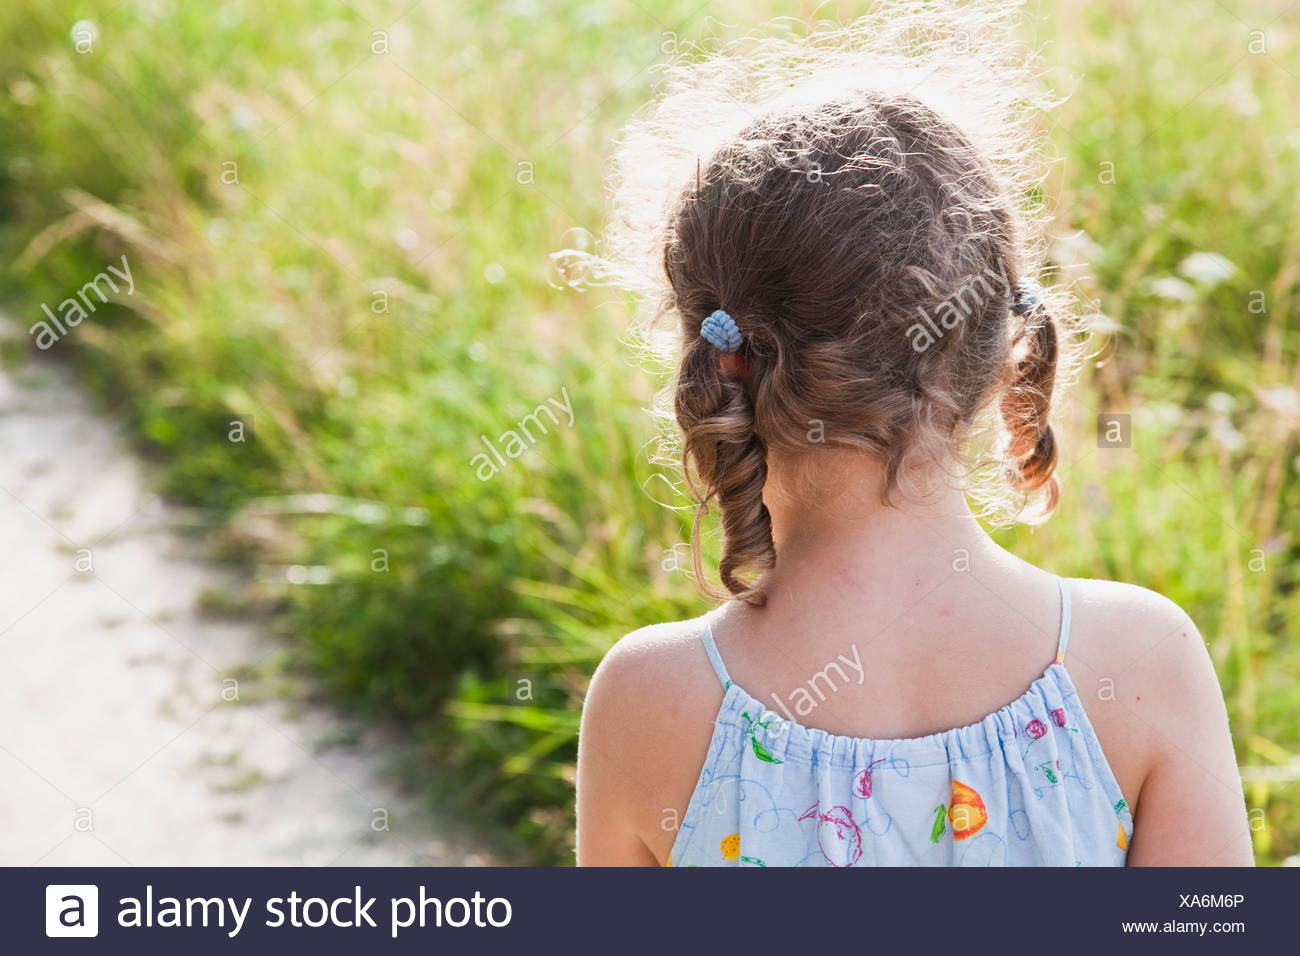 Rear view of girl against grass - Stock Image